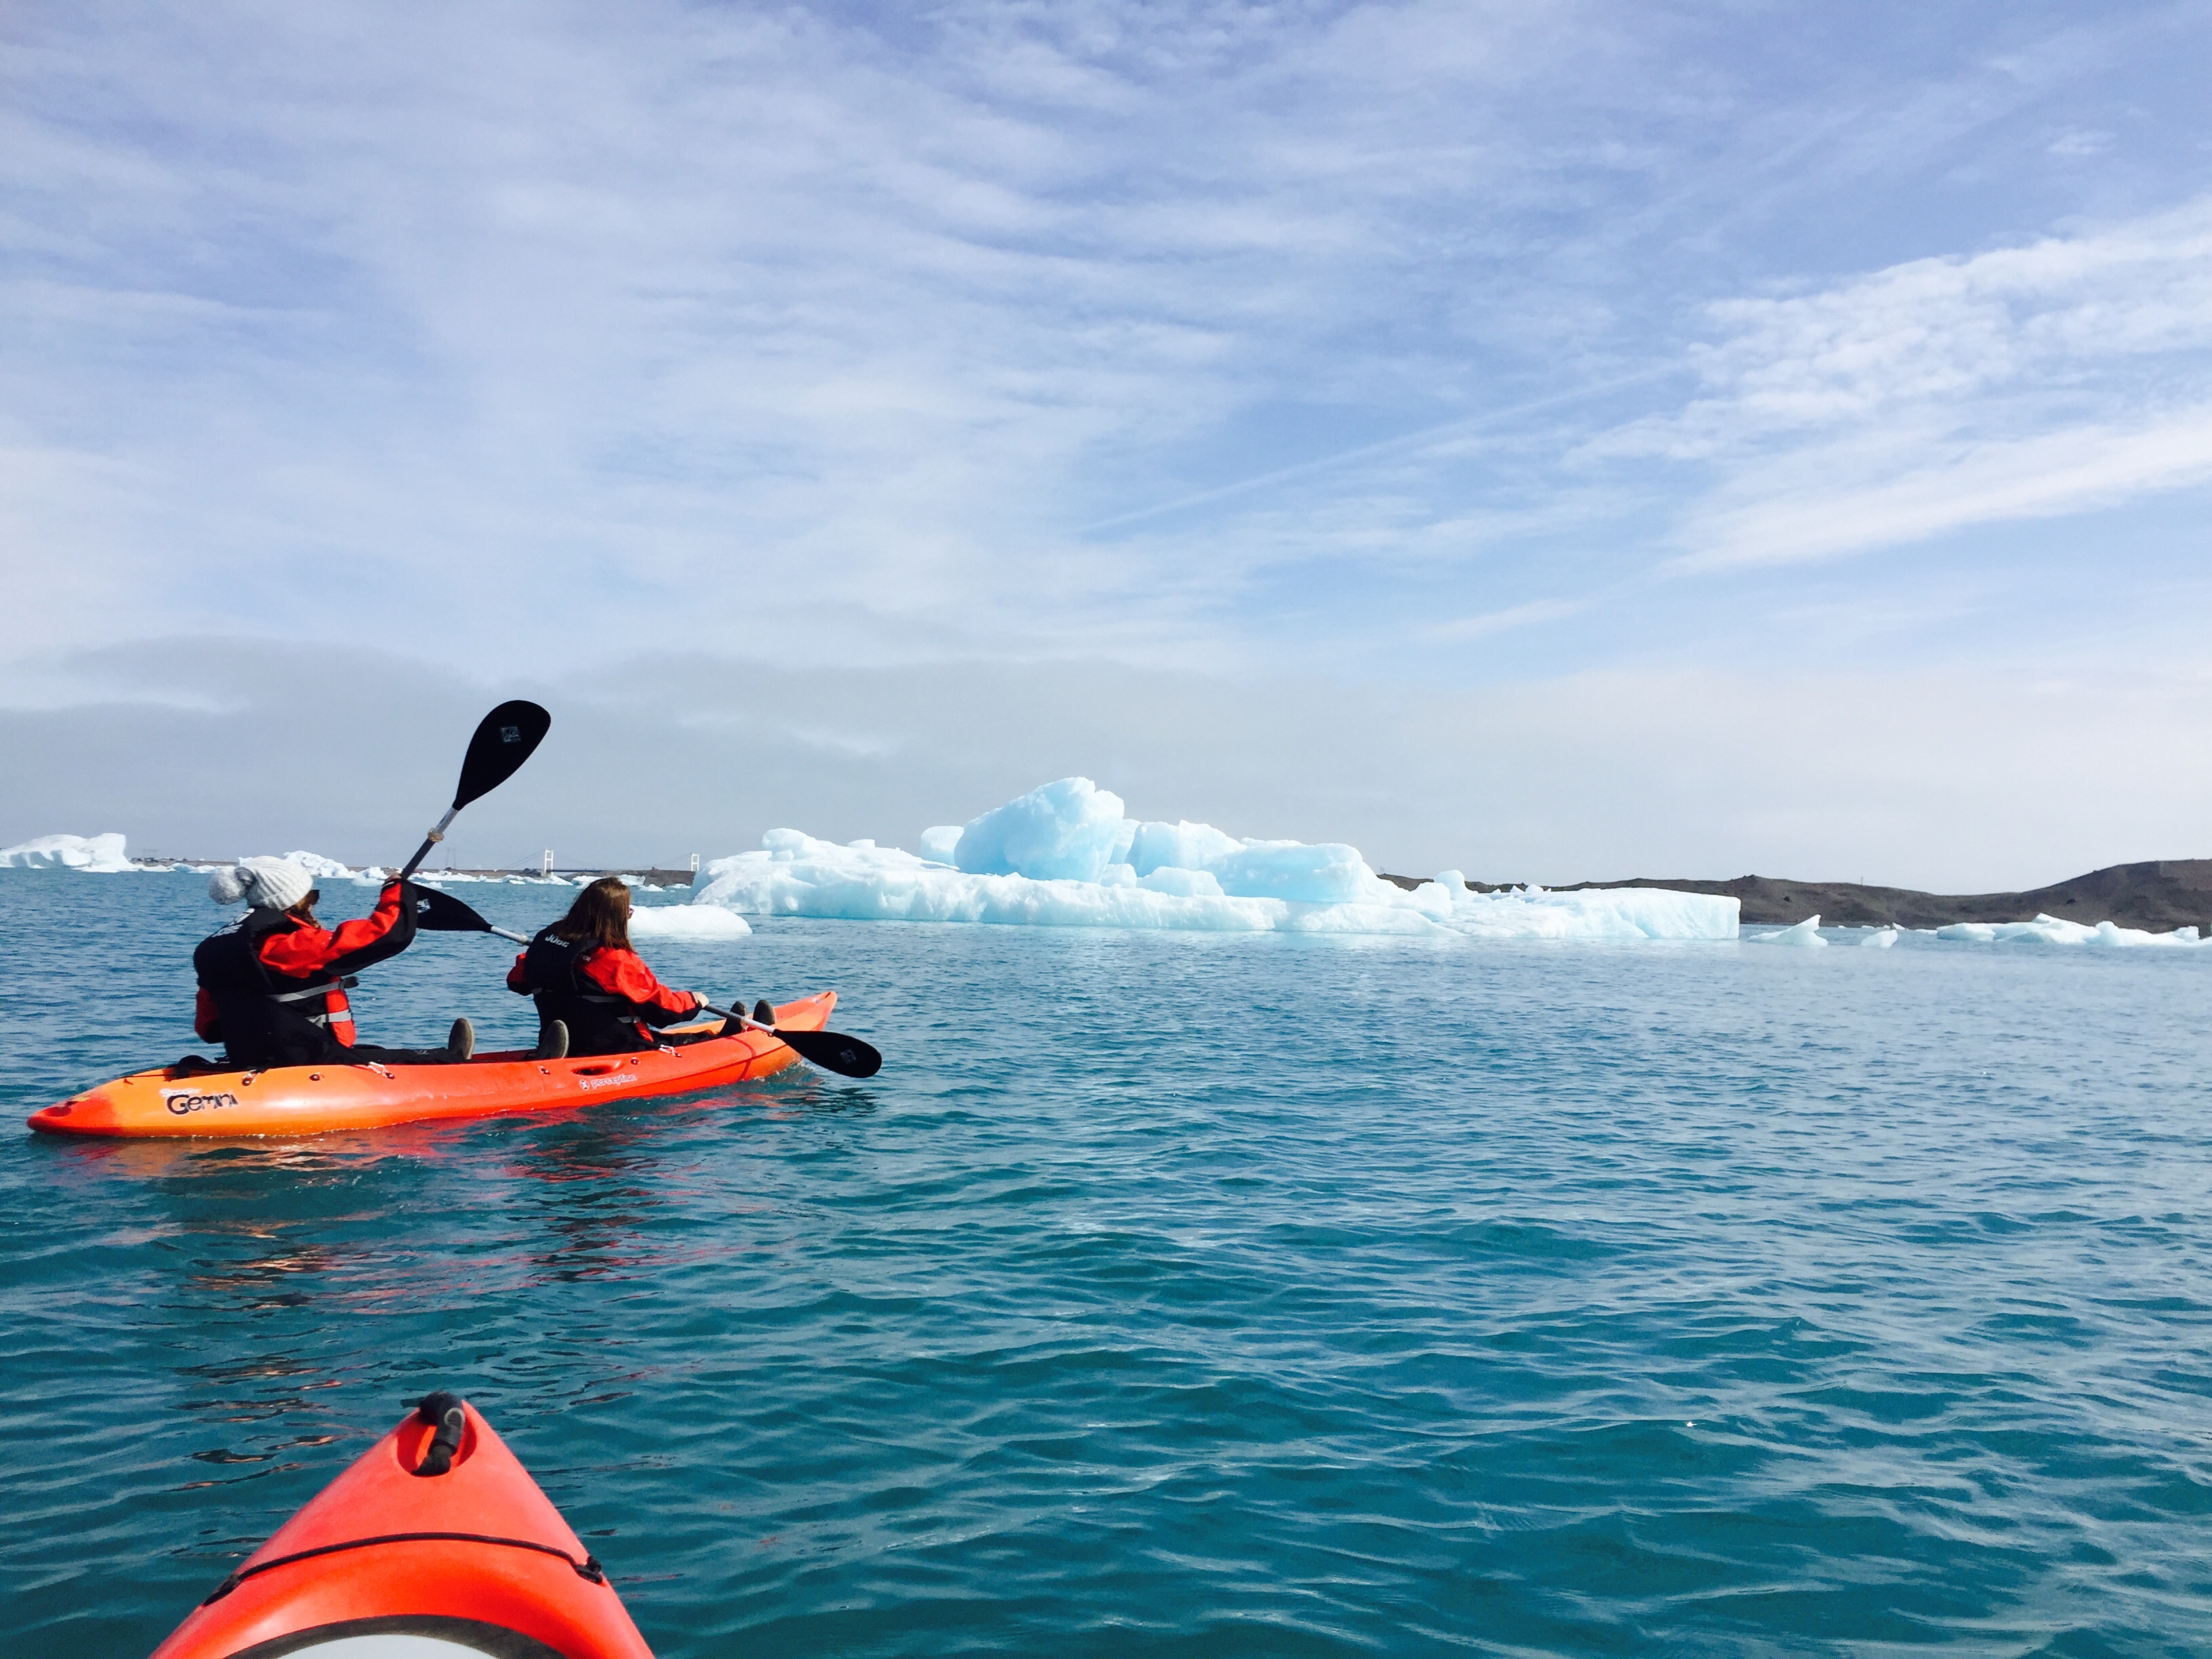 Jökulsárlón glacier lagoon is known for its incredible shades of blue and wonderful surrounding scenery.